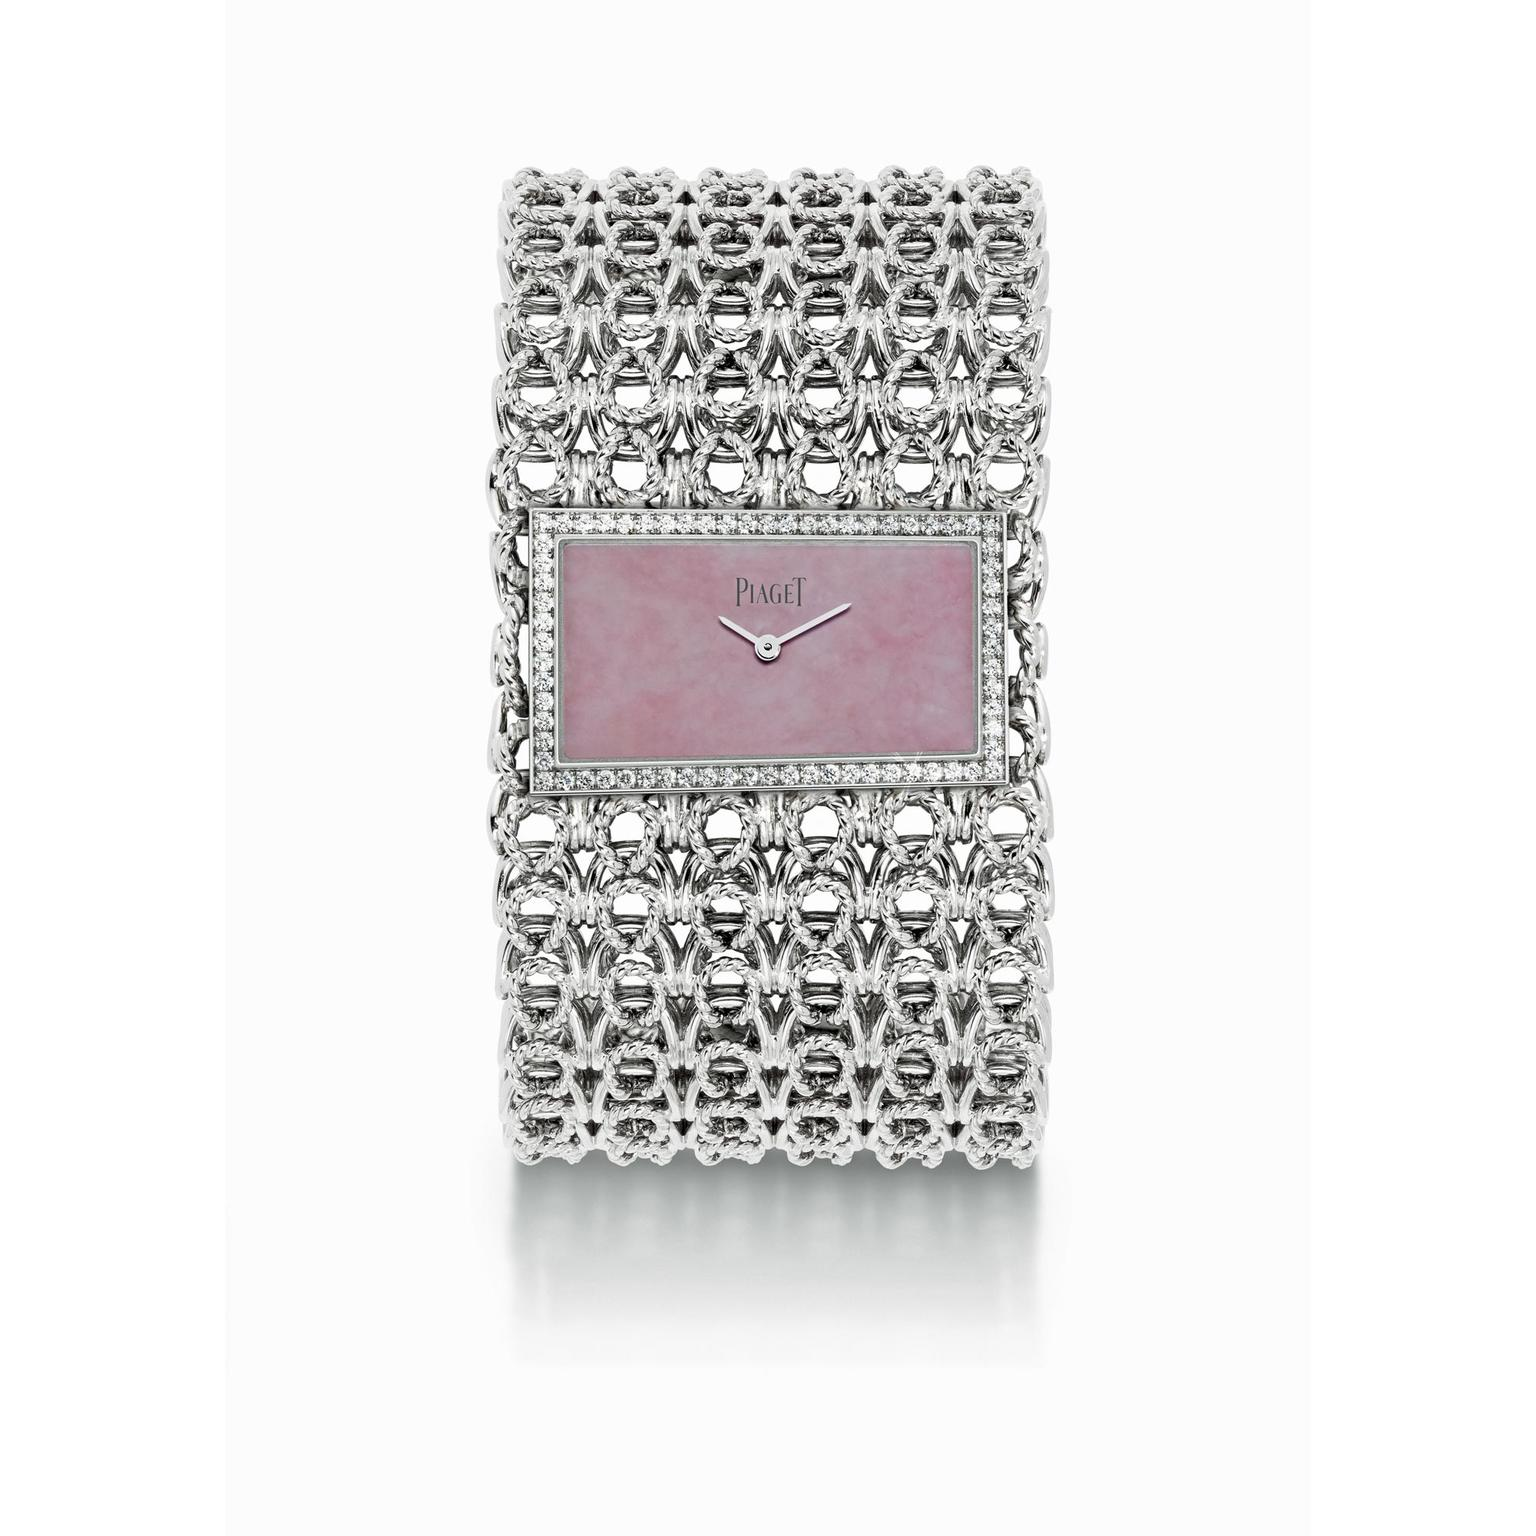 Piaget high jewellery cuff watch in white gold with an opal dial